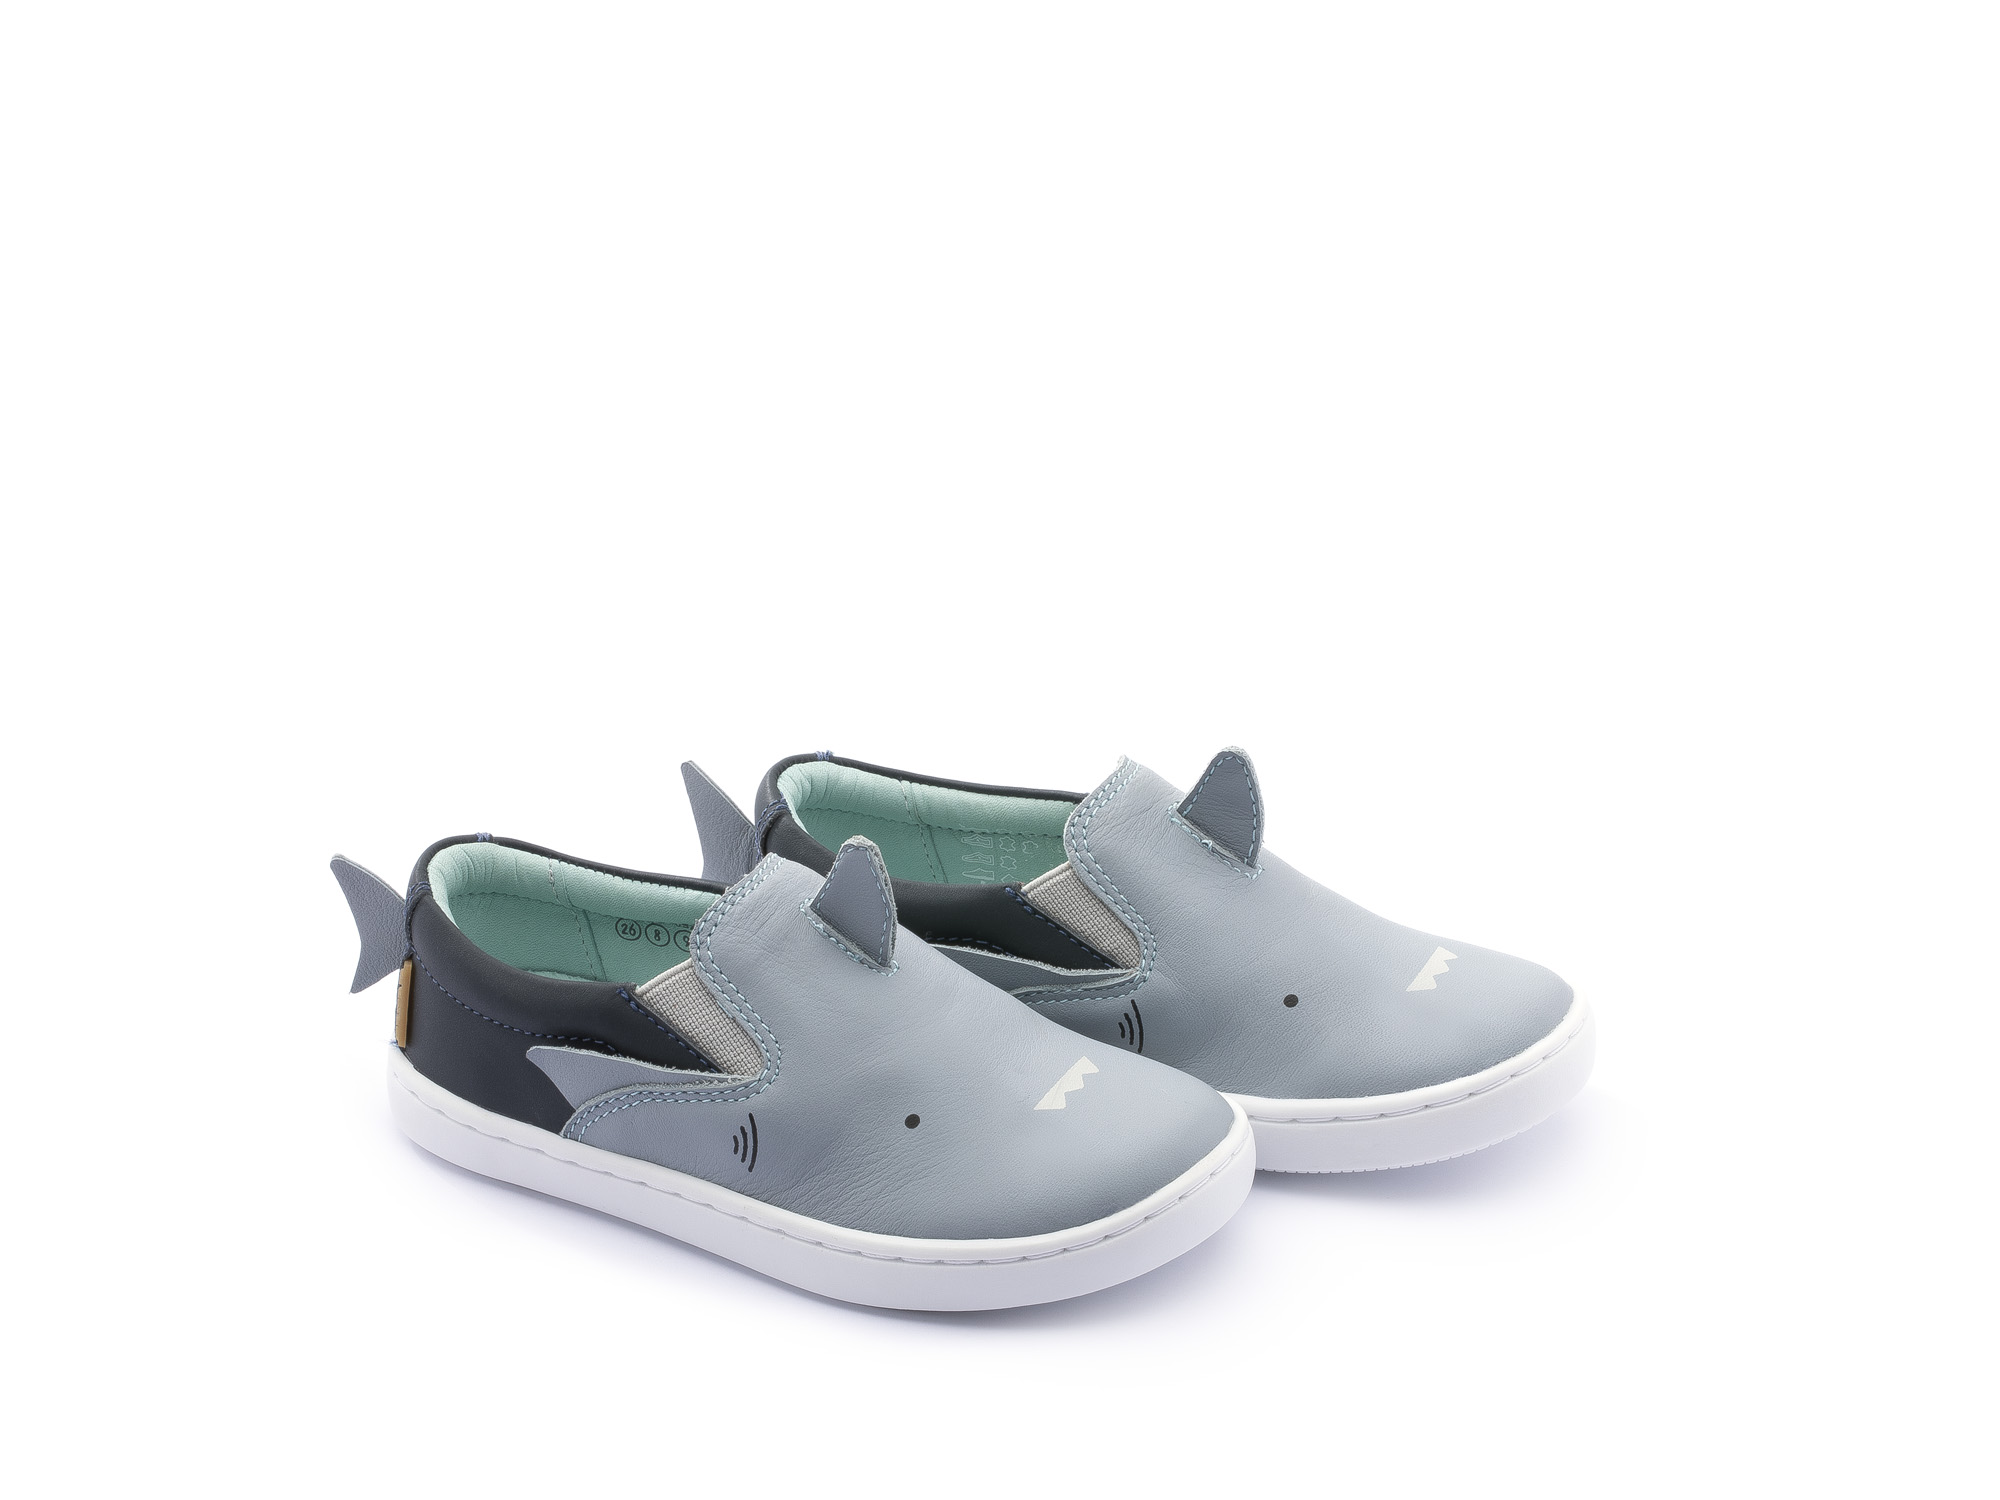 Tênis  infantil masculino little shark